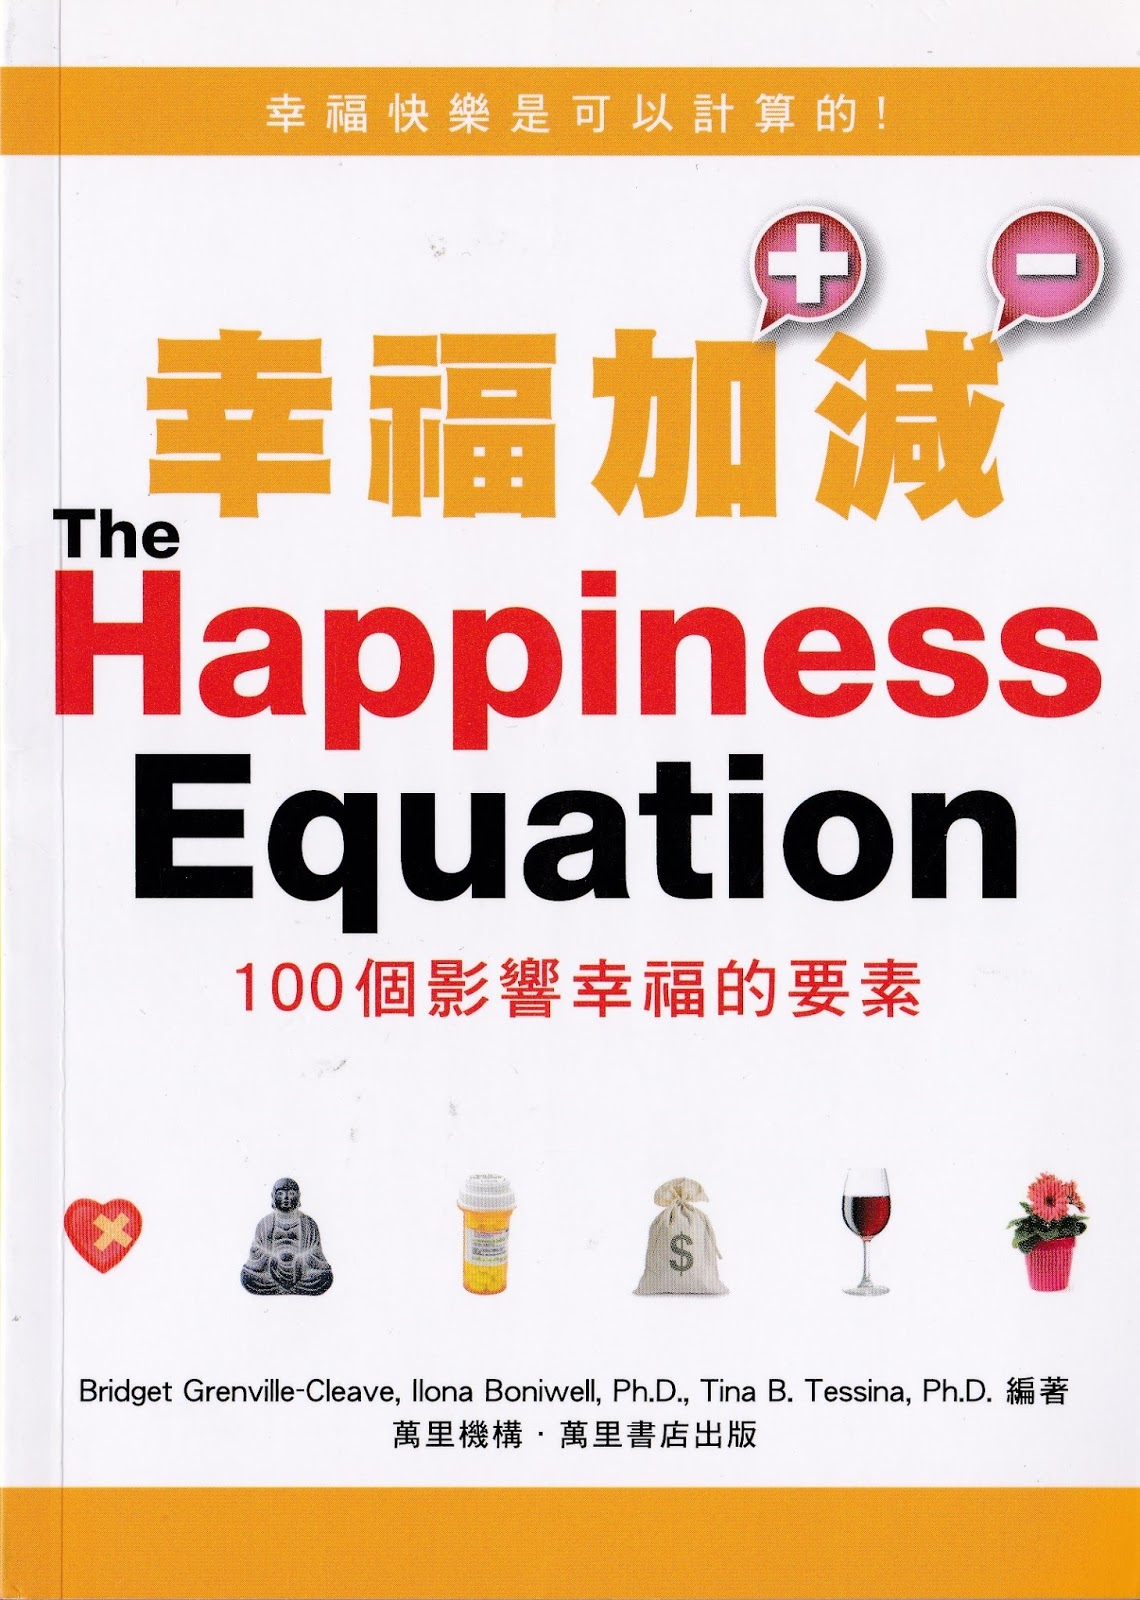 Leo Cheung: The Happiness Equation